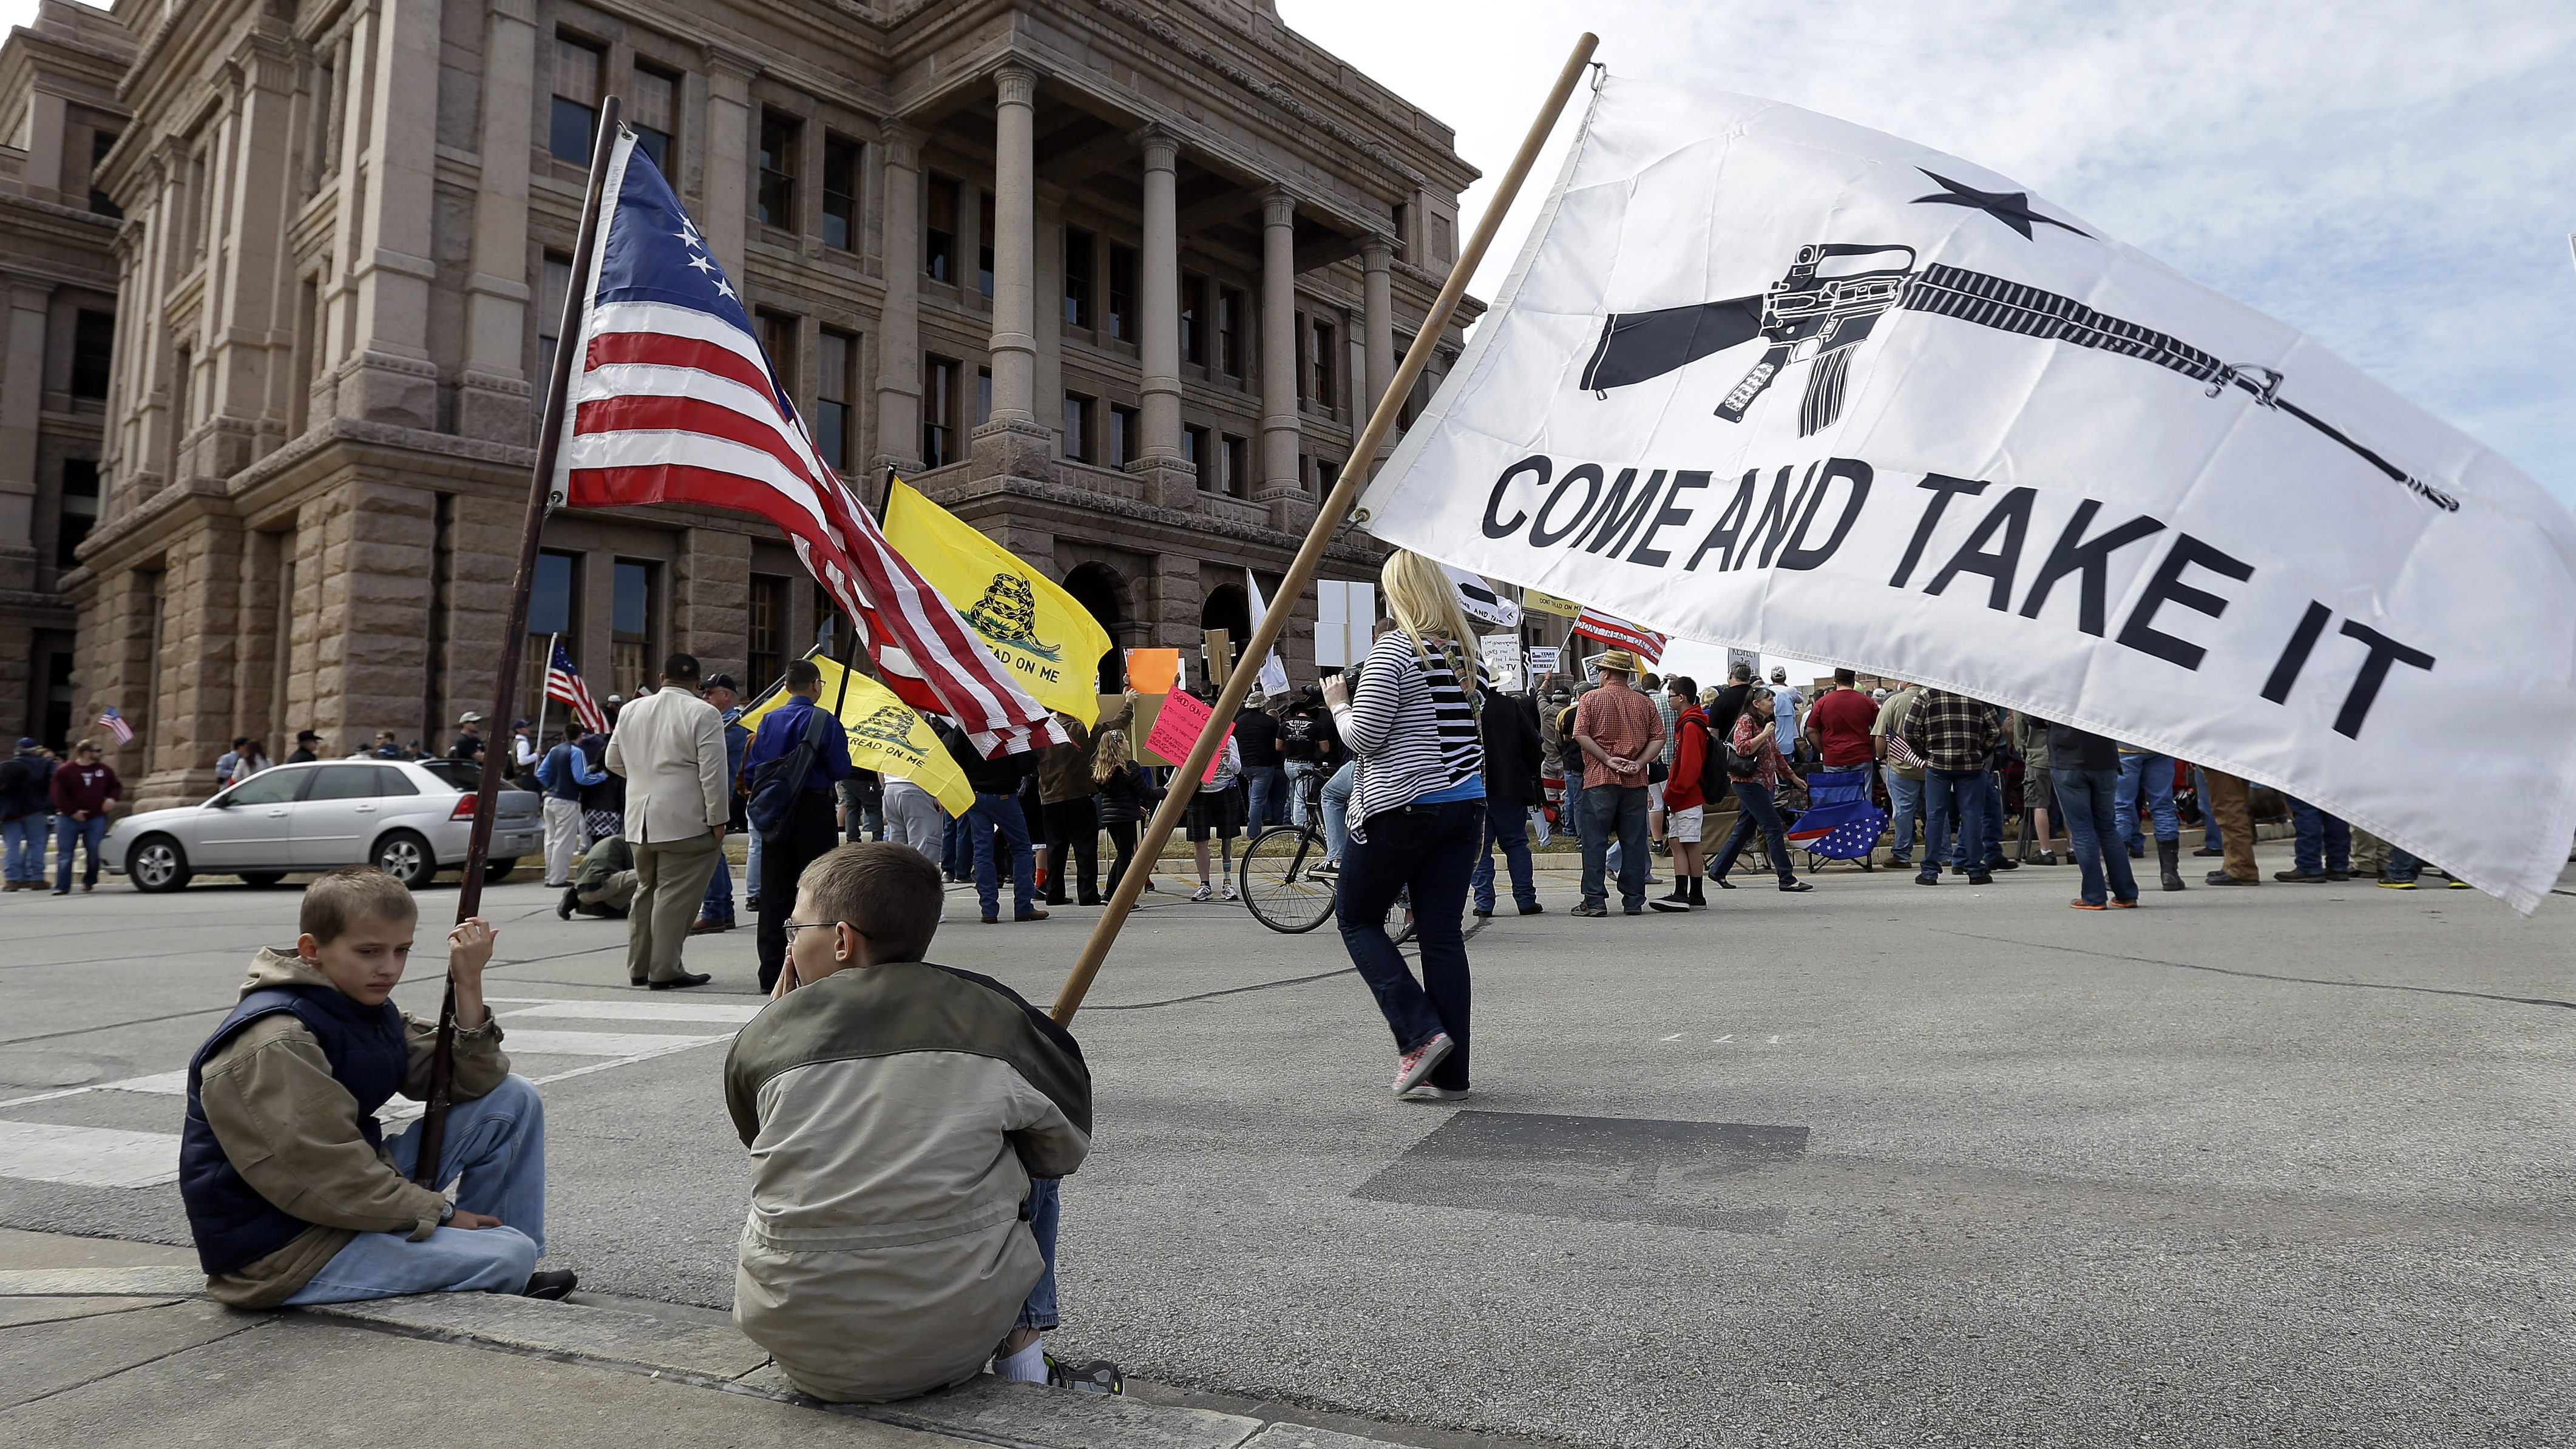 Children pictured with a pro-gun flag in Texas